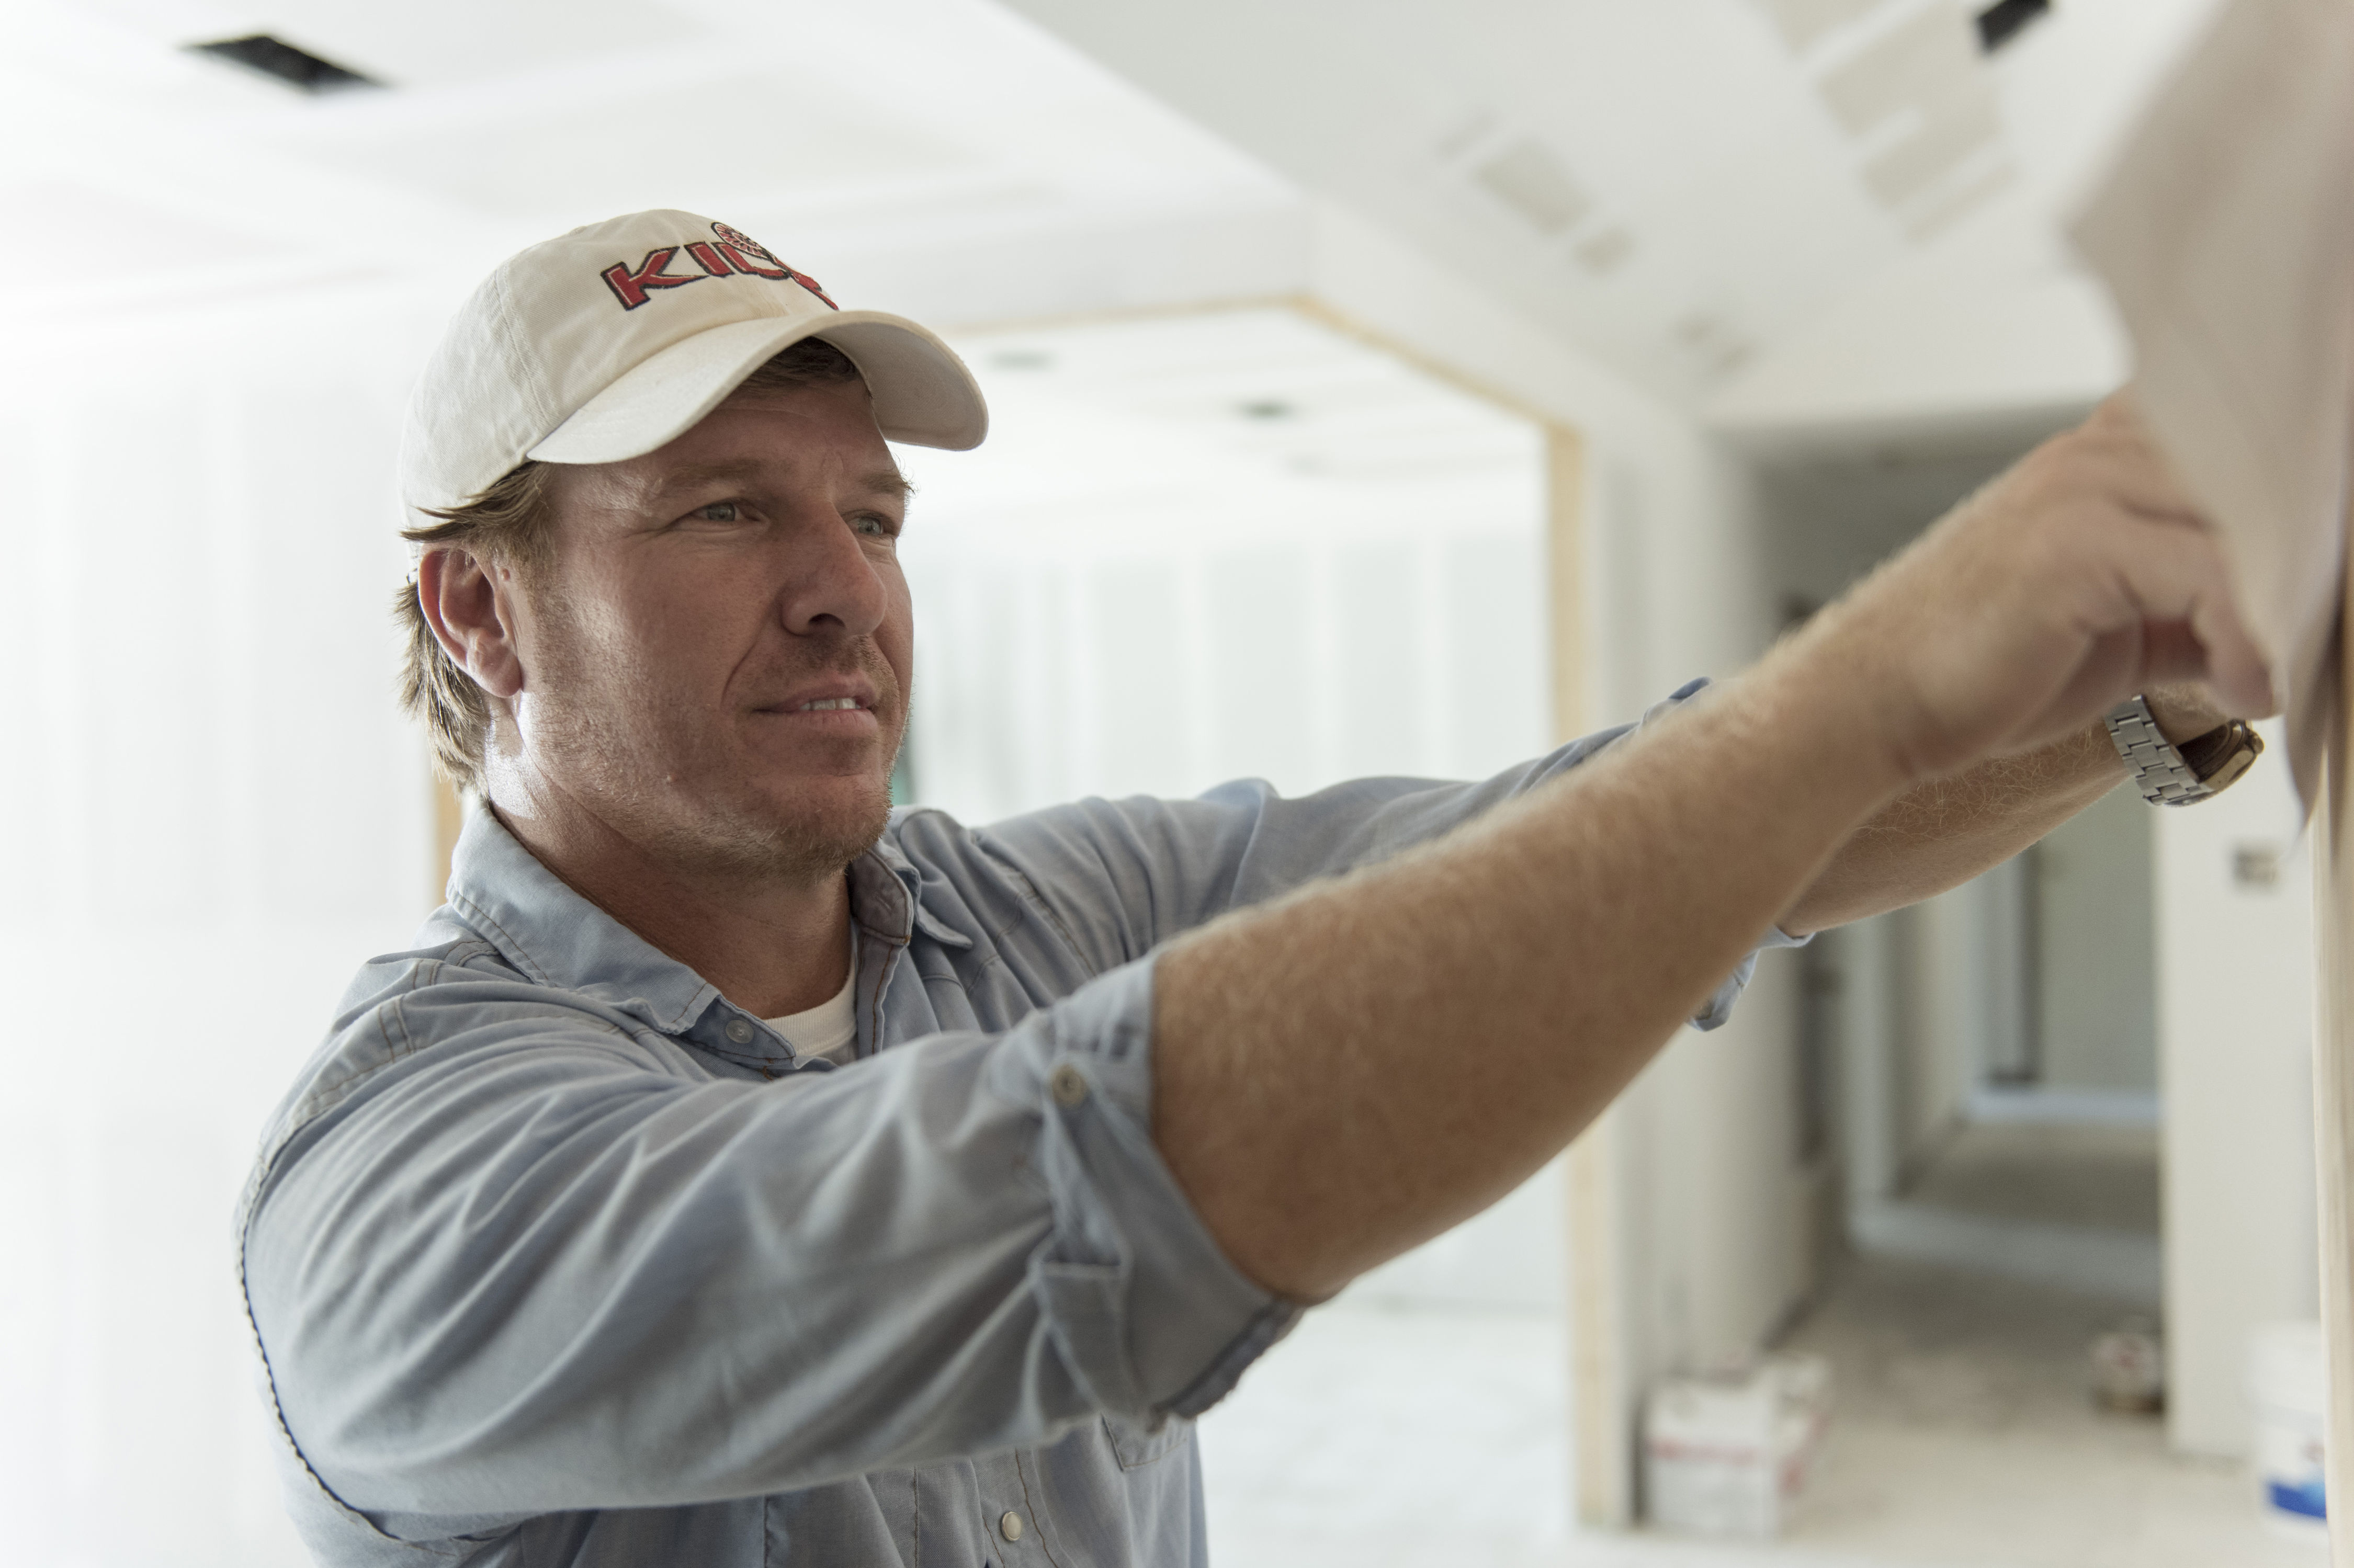 7 Things Chip Gaines Wants You To Know About Fixing Up Your Home